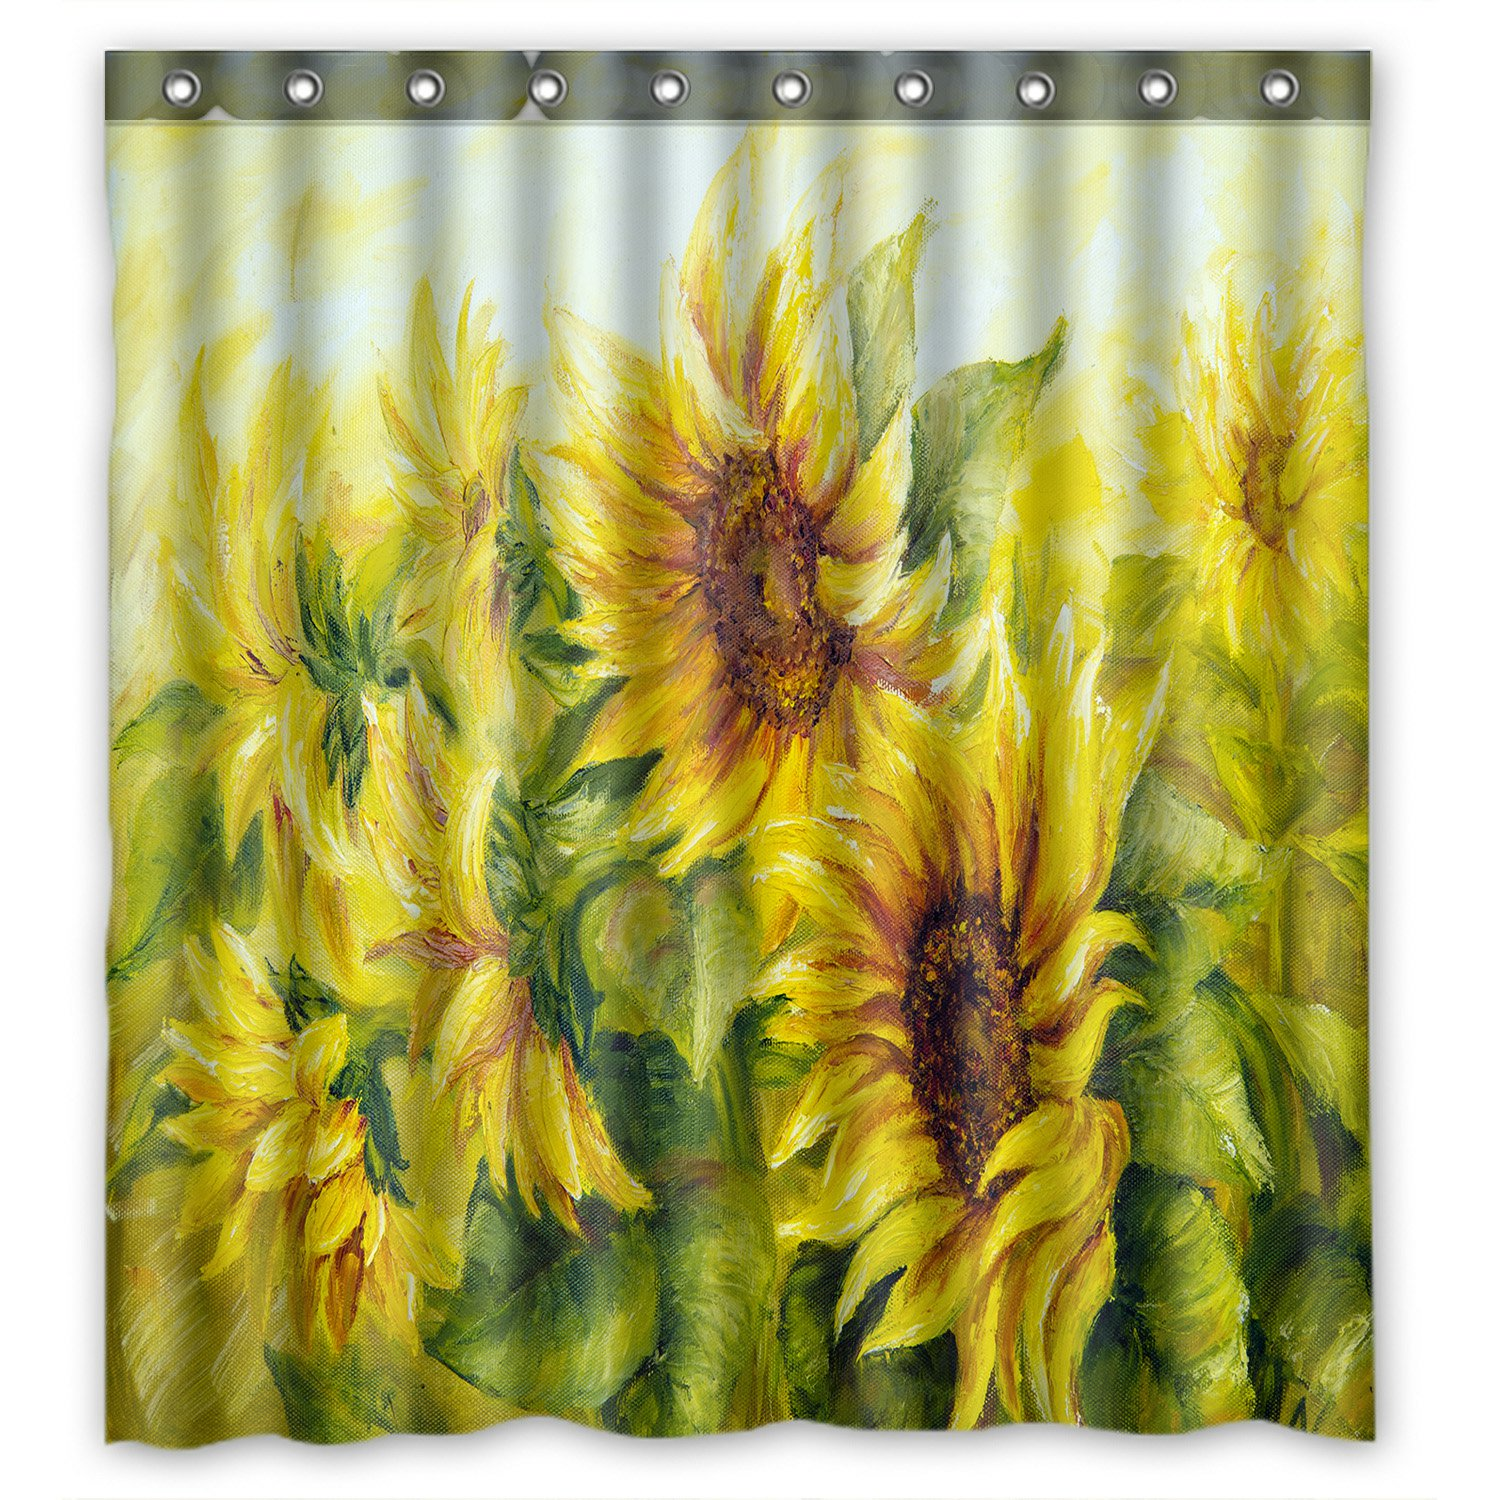 PHFZK Oil Painting Shower Curtain, Sunny Nature Art Sunflower Sunflowers Landscape Yellow Polyester Fabric Bathroom Shower Curtain 66x72 inches